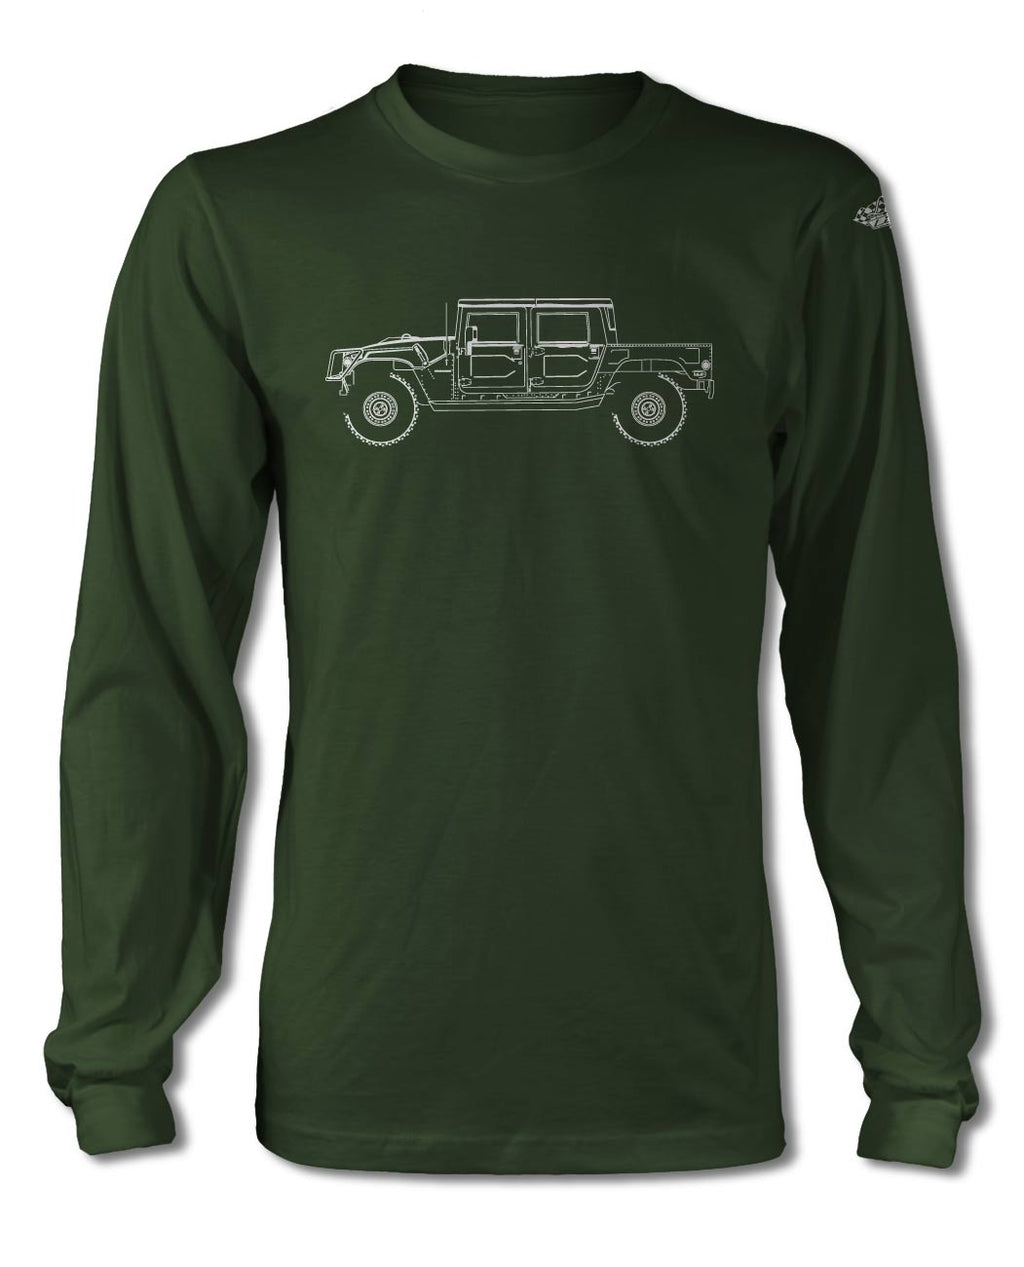 Hummer H1 Pick-Up 4x4 T-Shirt - Long Sleeves - Side View